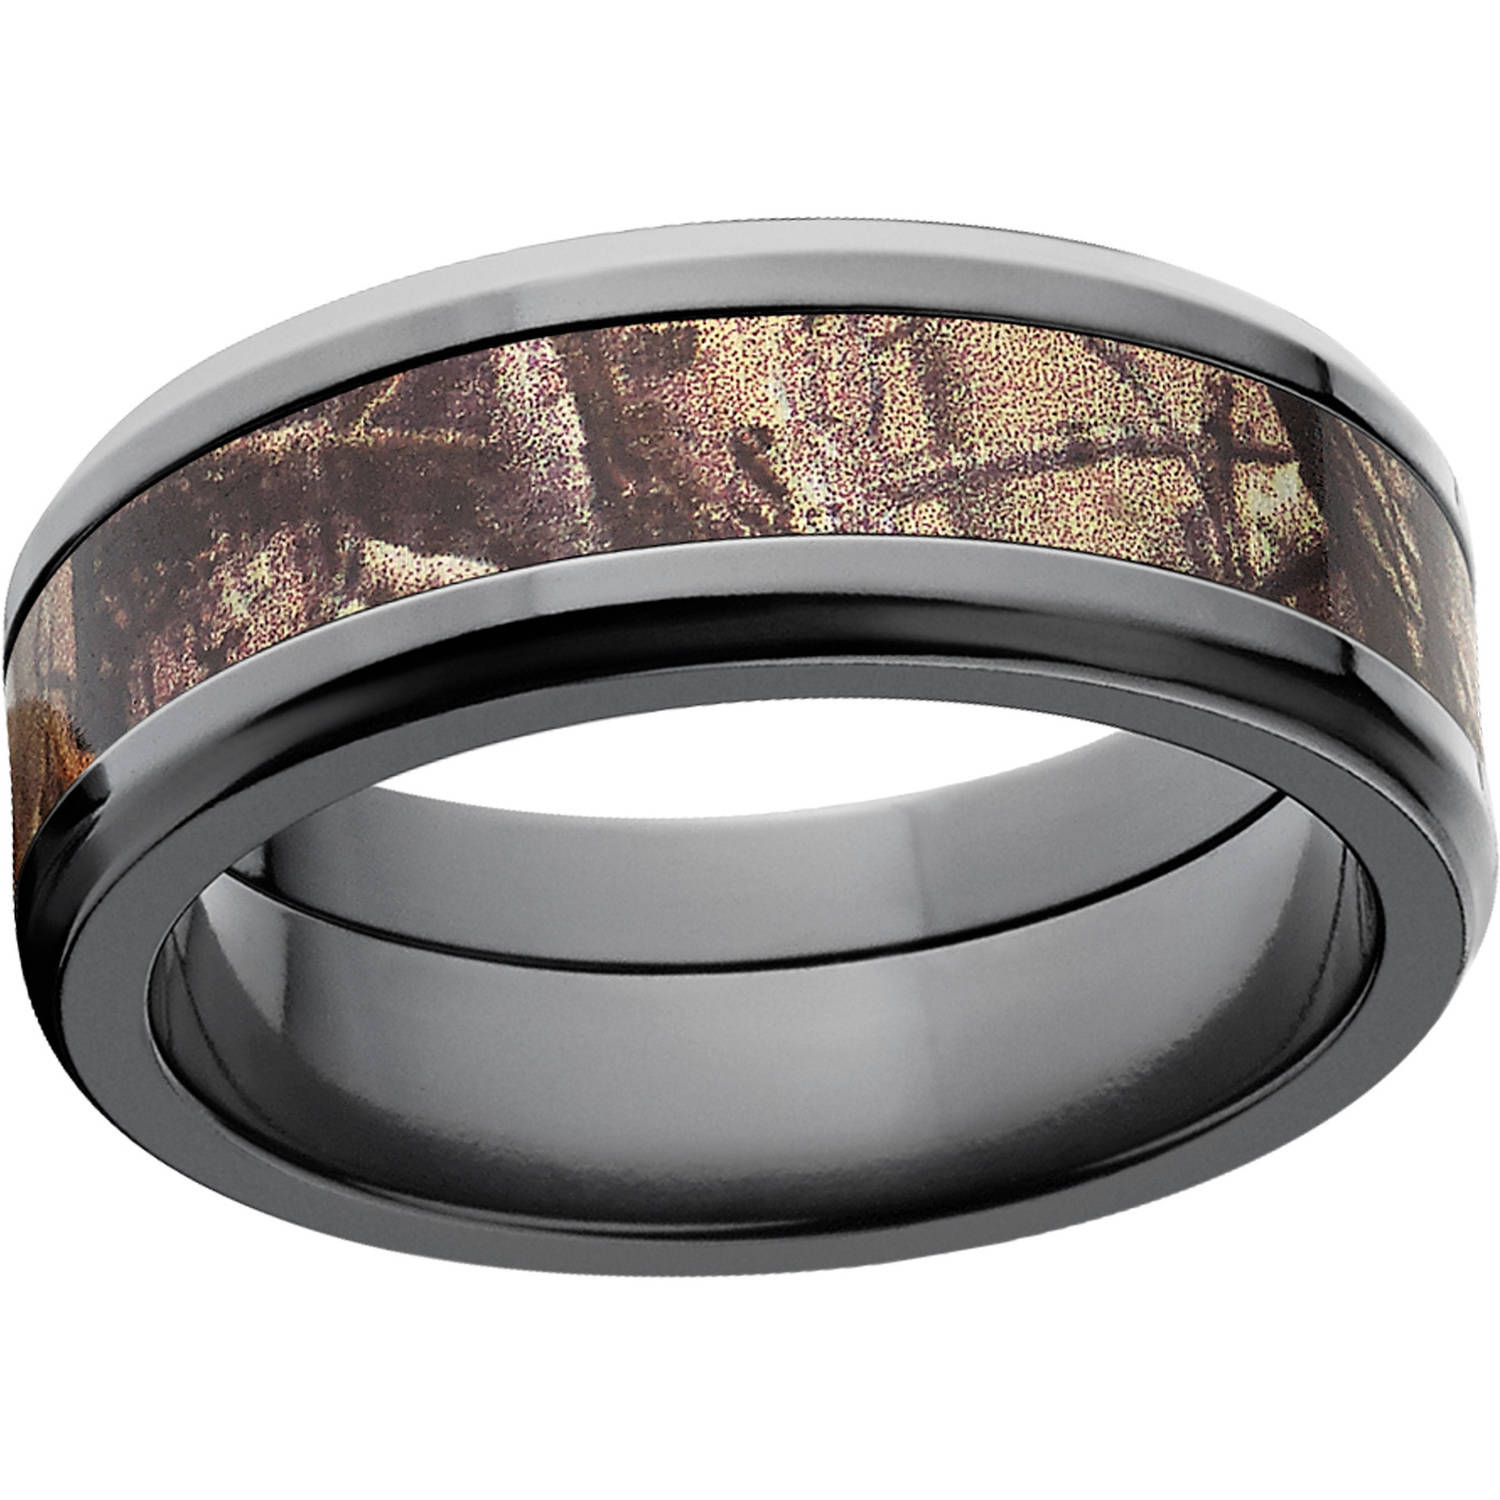 tungsten finish com wood will dp band black carbide fit king comfort polished high wedding ring amazon nature inlay mens rings